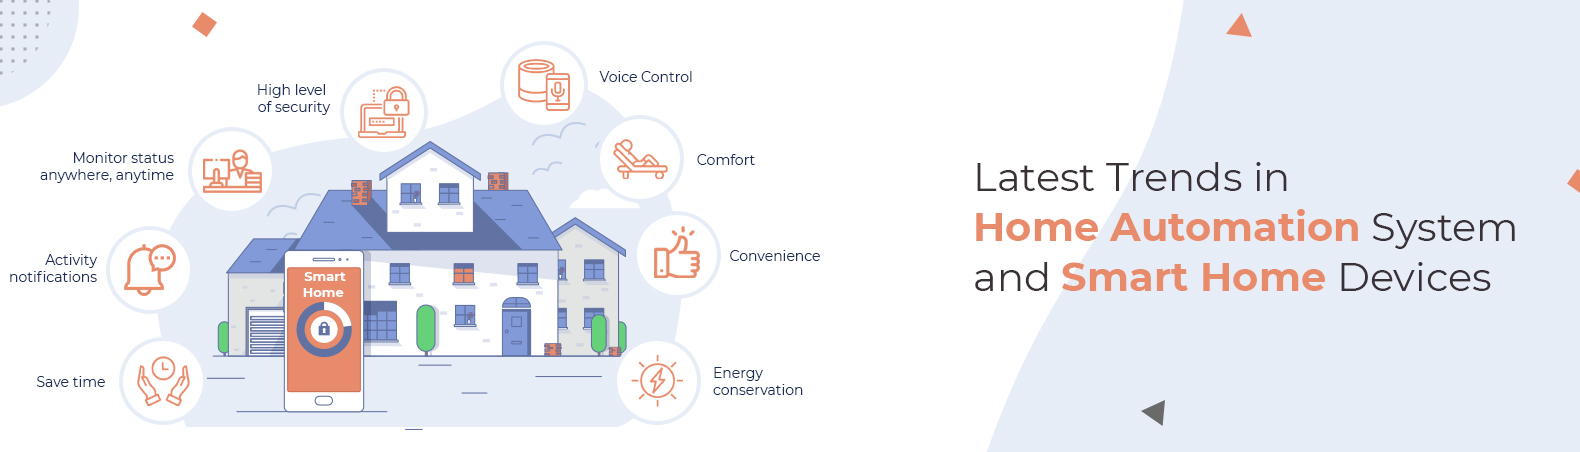 Latest Trends in Home Automation System and Smart Home Devices